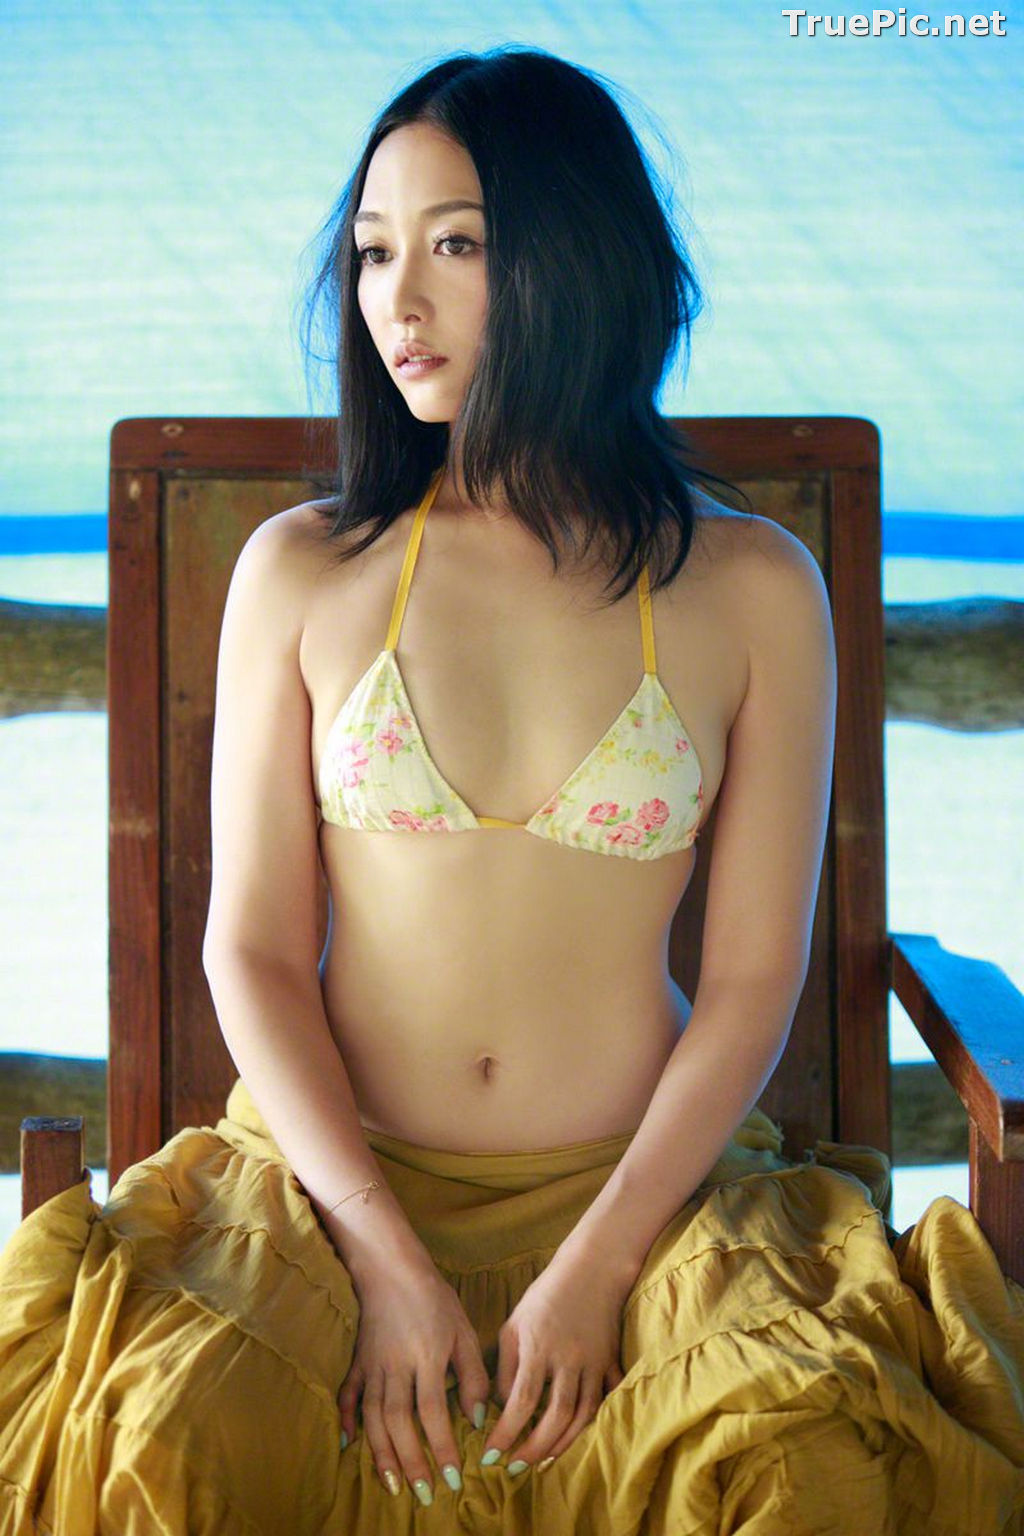 Image Wanibooks No.123 - Japanese Voice Actress and Model - Sayuri Anzu - TruePic.net - Picture-6